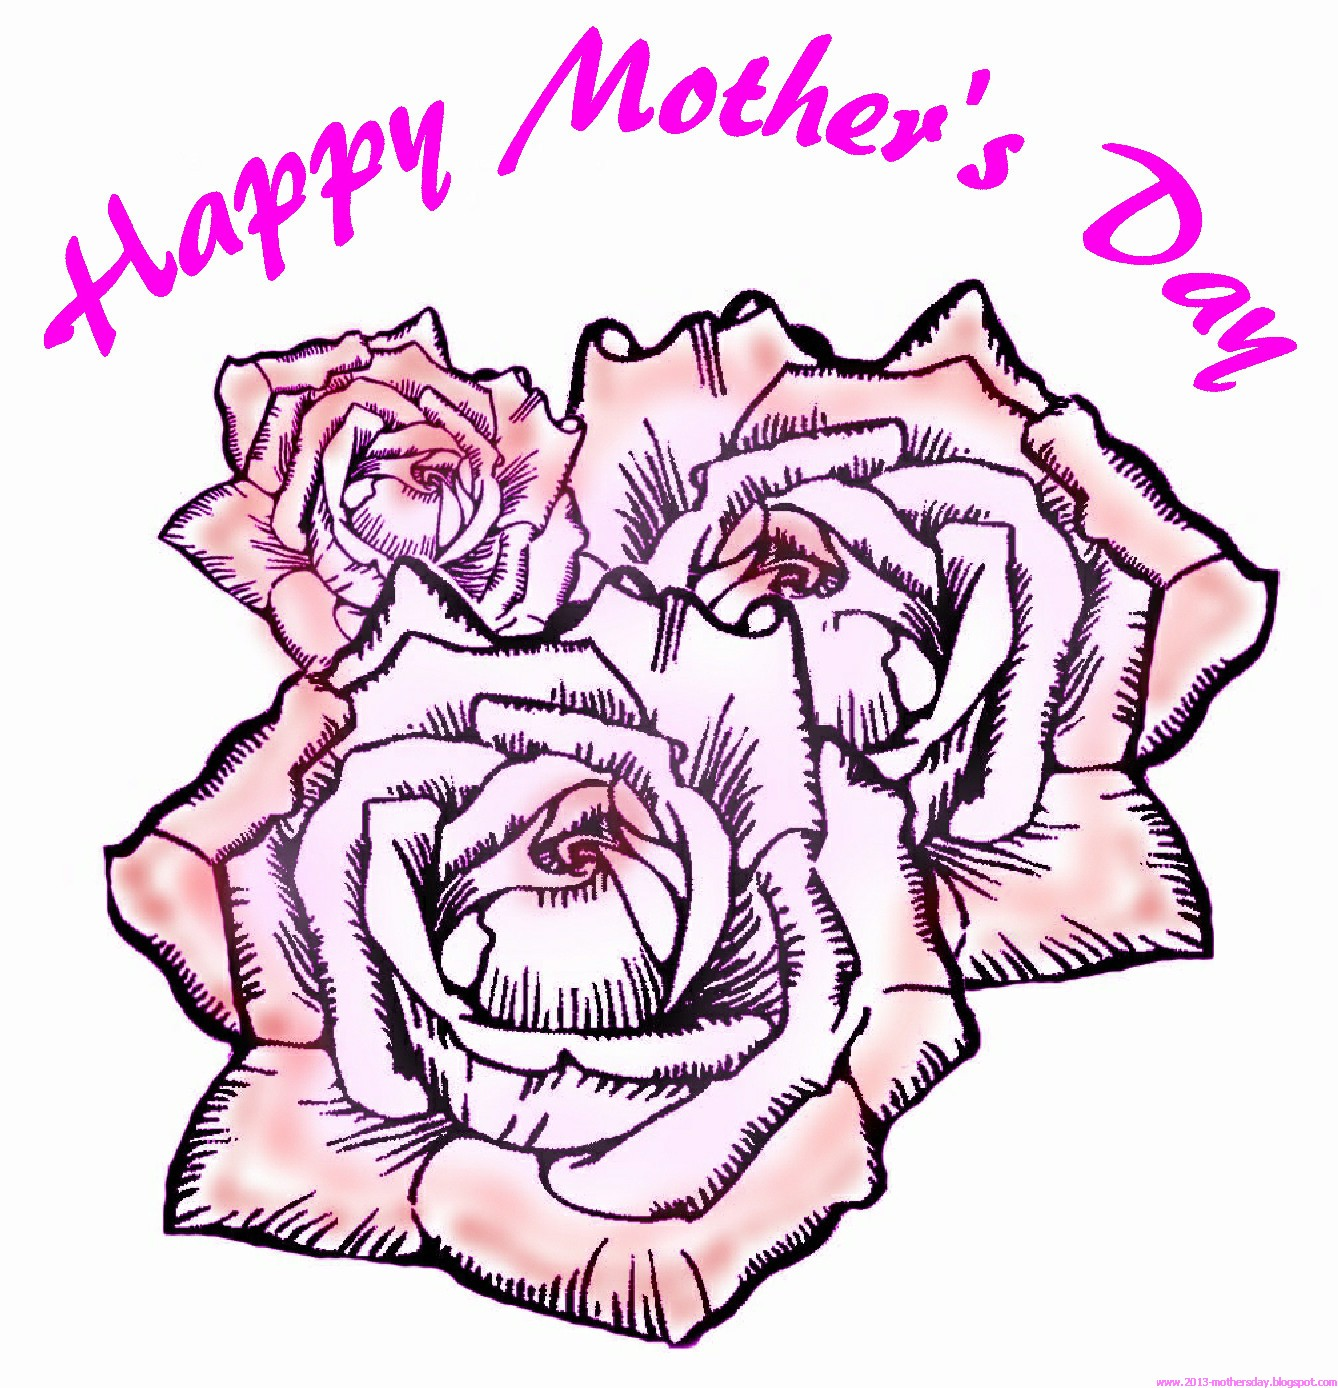 Religious Mother S Day Panda Free Images clipart free image.